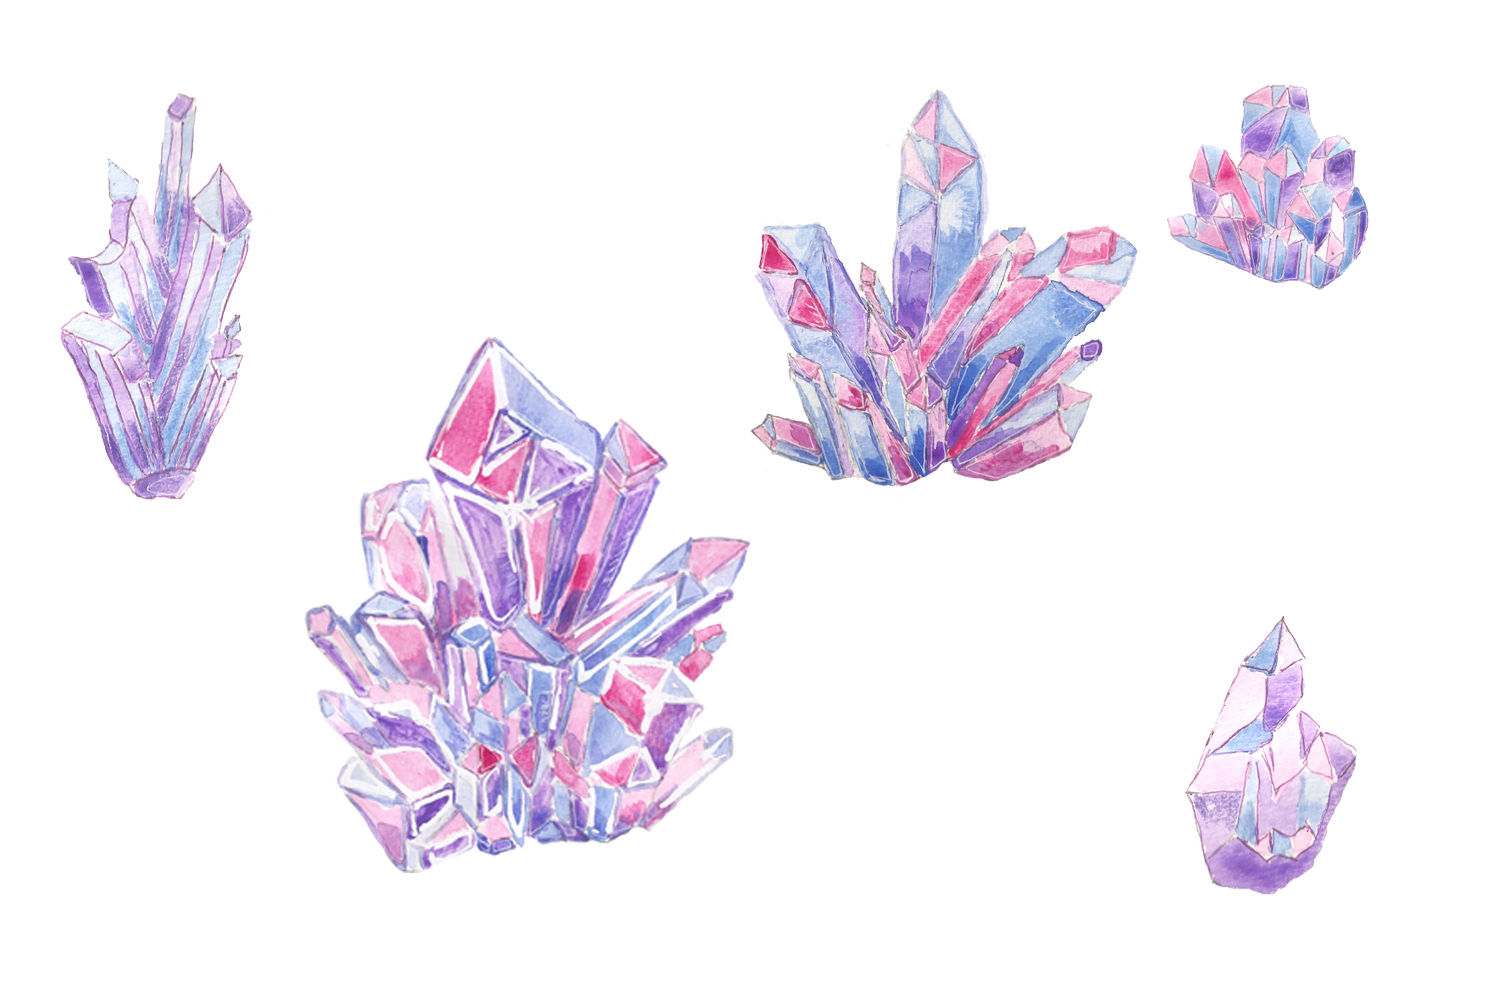 Crystals & Gems example image 6